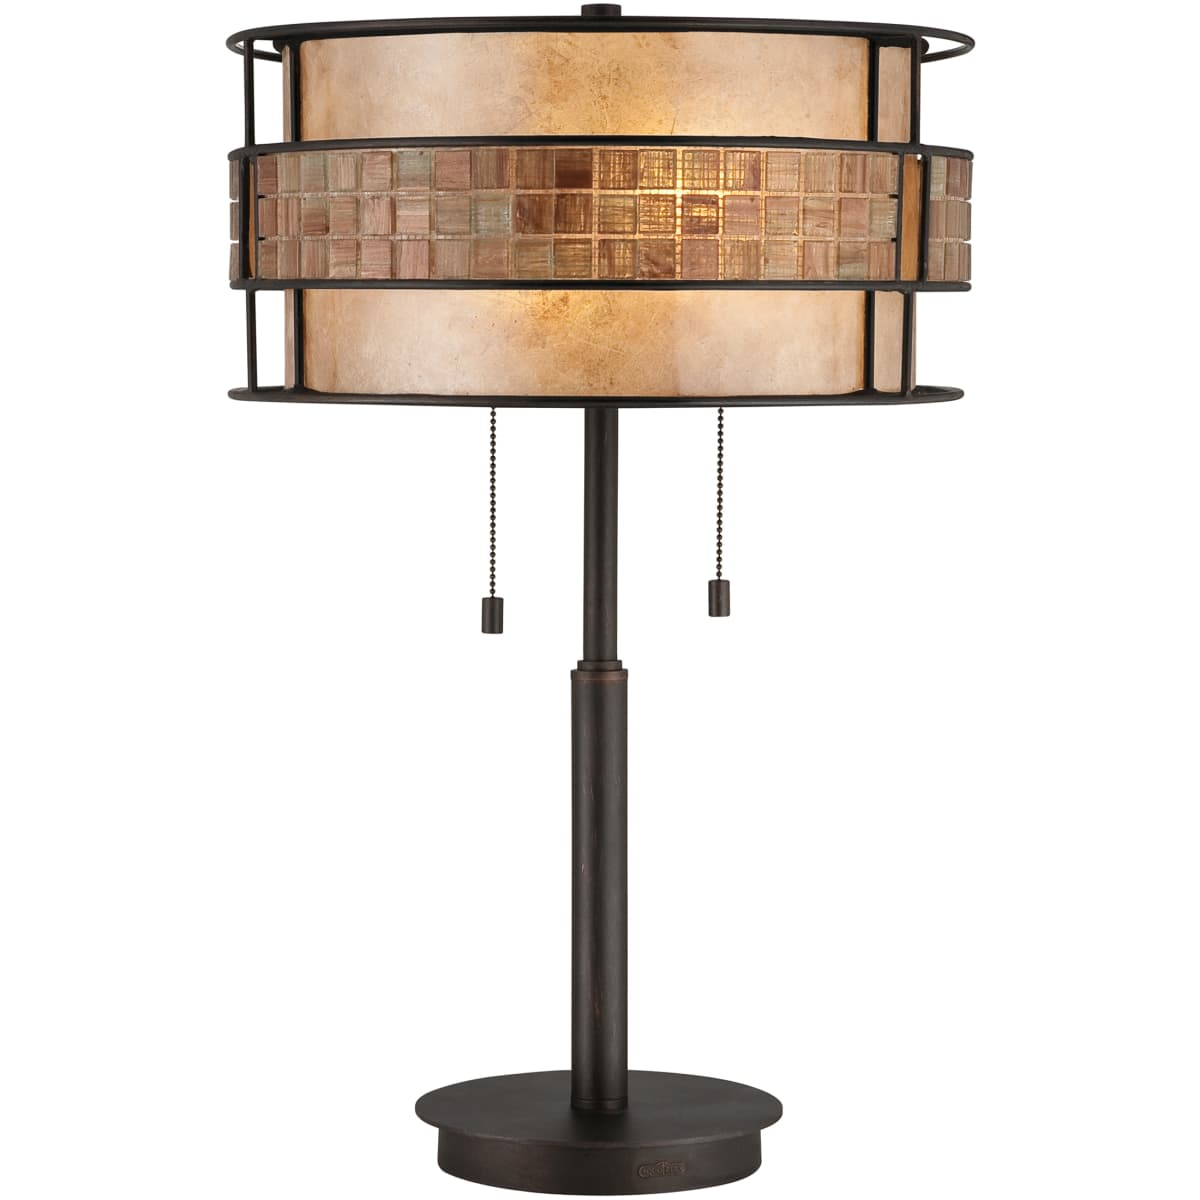 Quoizel Mc842trc Renaissance Copper Laguna 2 Light 25 Tall Table Lamp With Oyster Mica And Mosaic Tile Shade Lightingshowplace Com